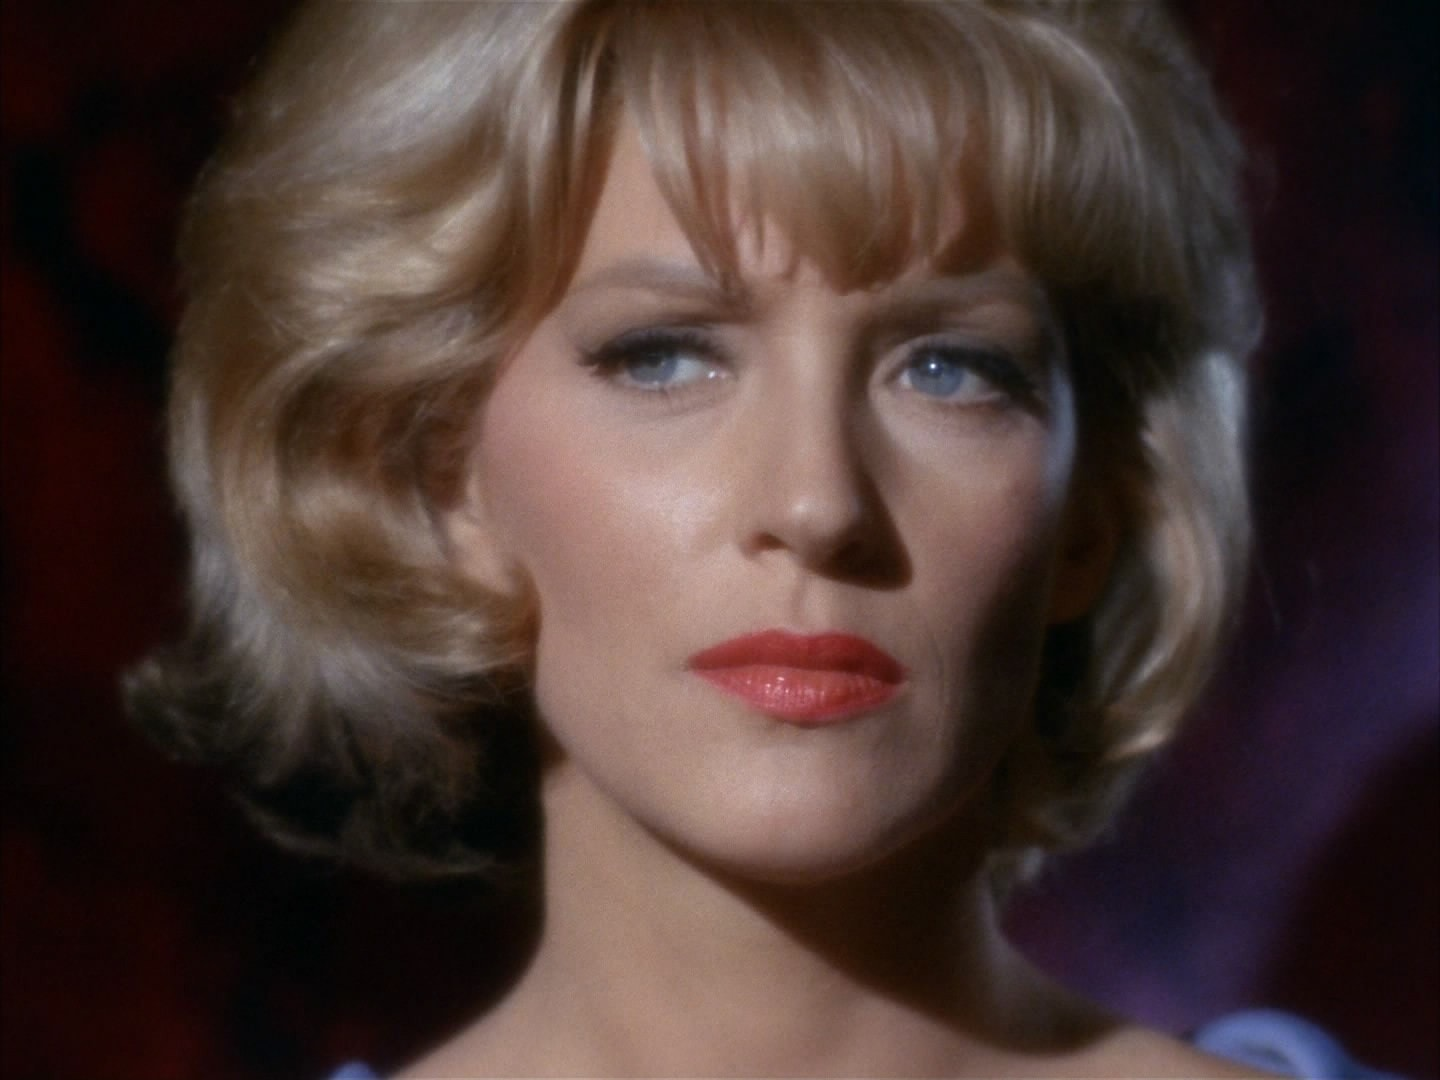 Majel Barrett Screensavers